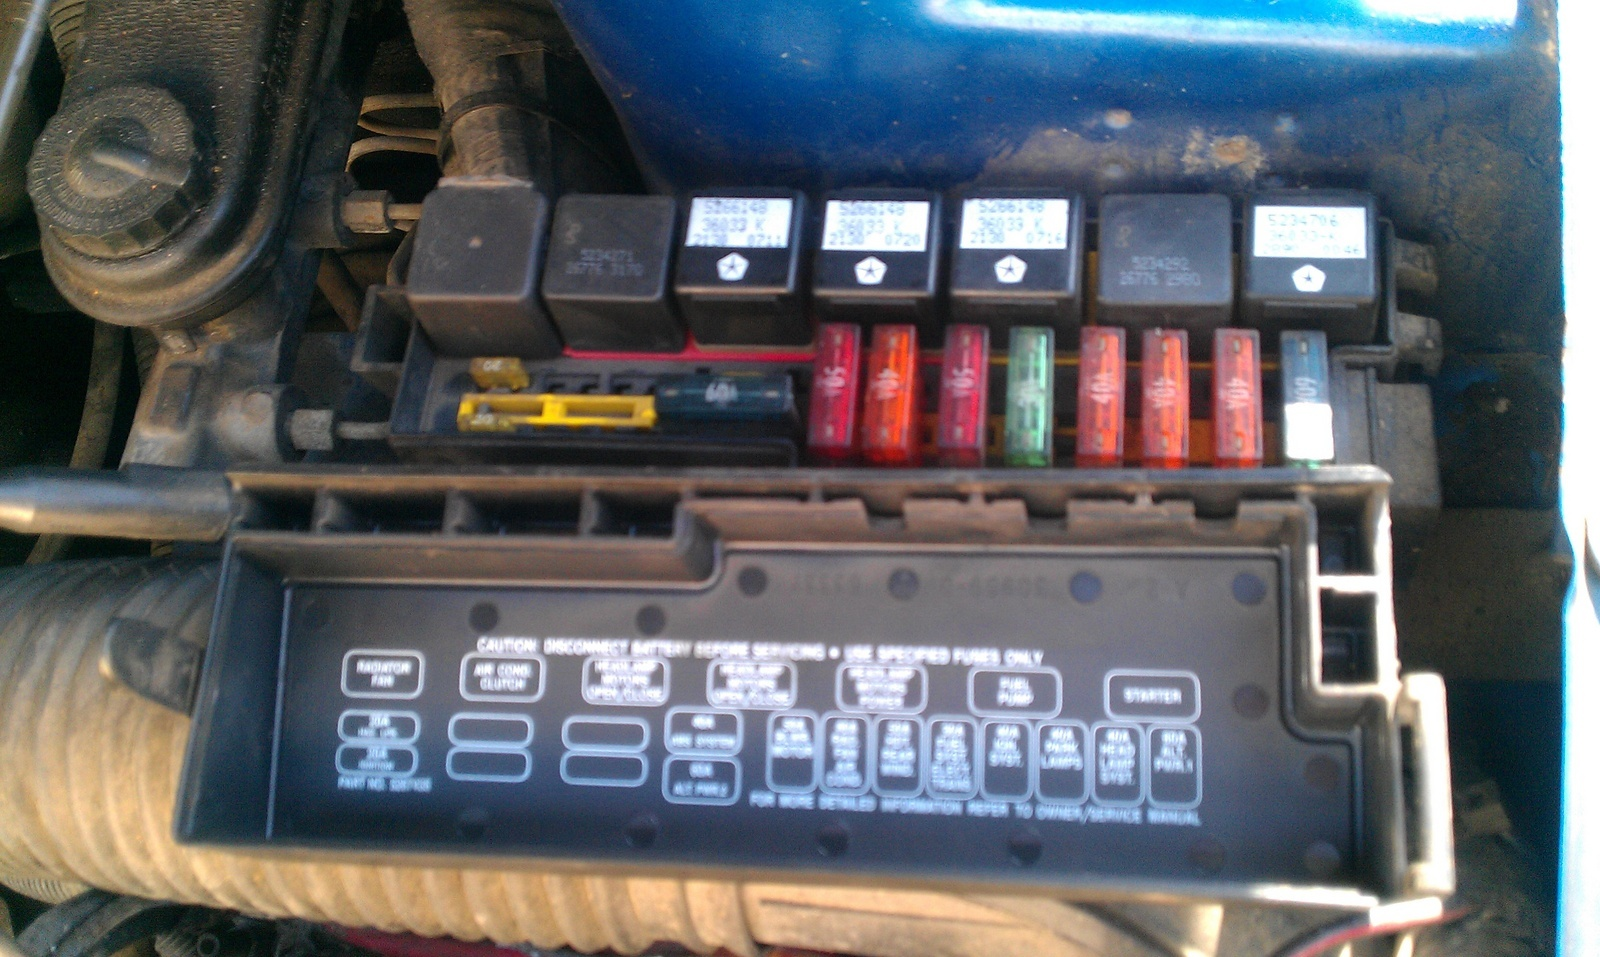 Lexus Sc400 Fuse Box Location Wiring Library 2007 Jeep Grand Cherokee Diagram Dodge Daytona Questions My Fuel Pump Stays On After I Turn The Car Off What